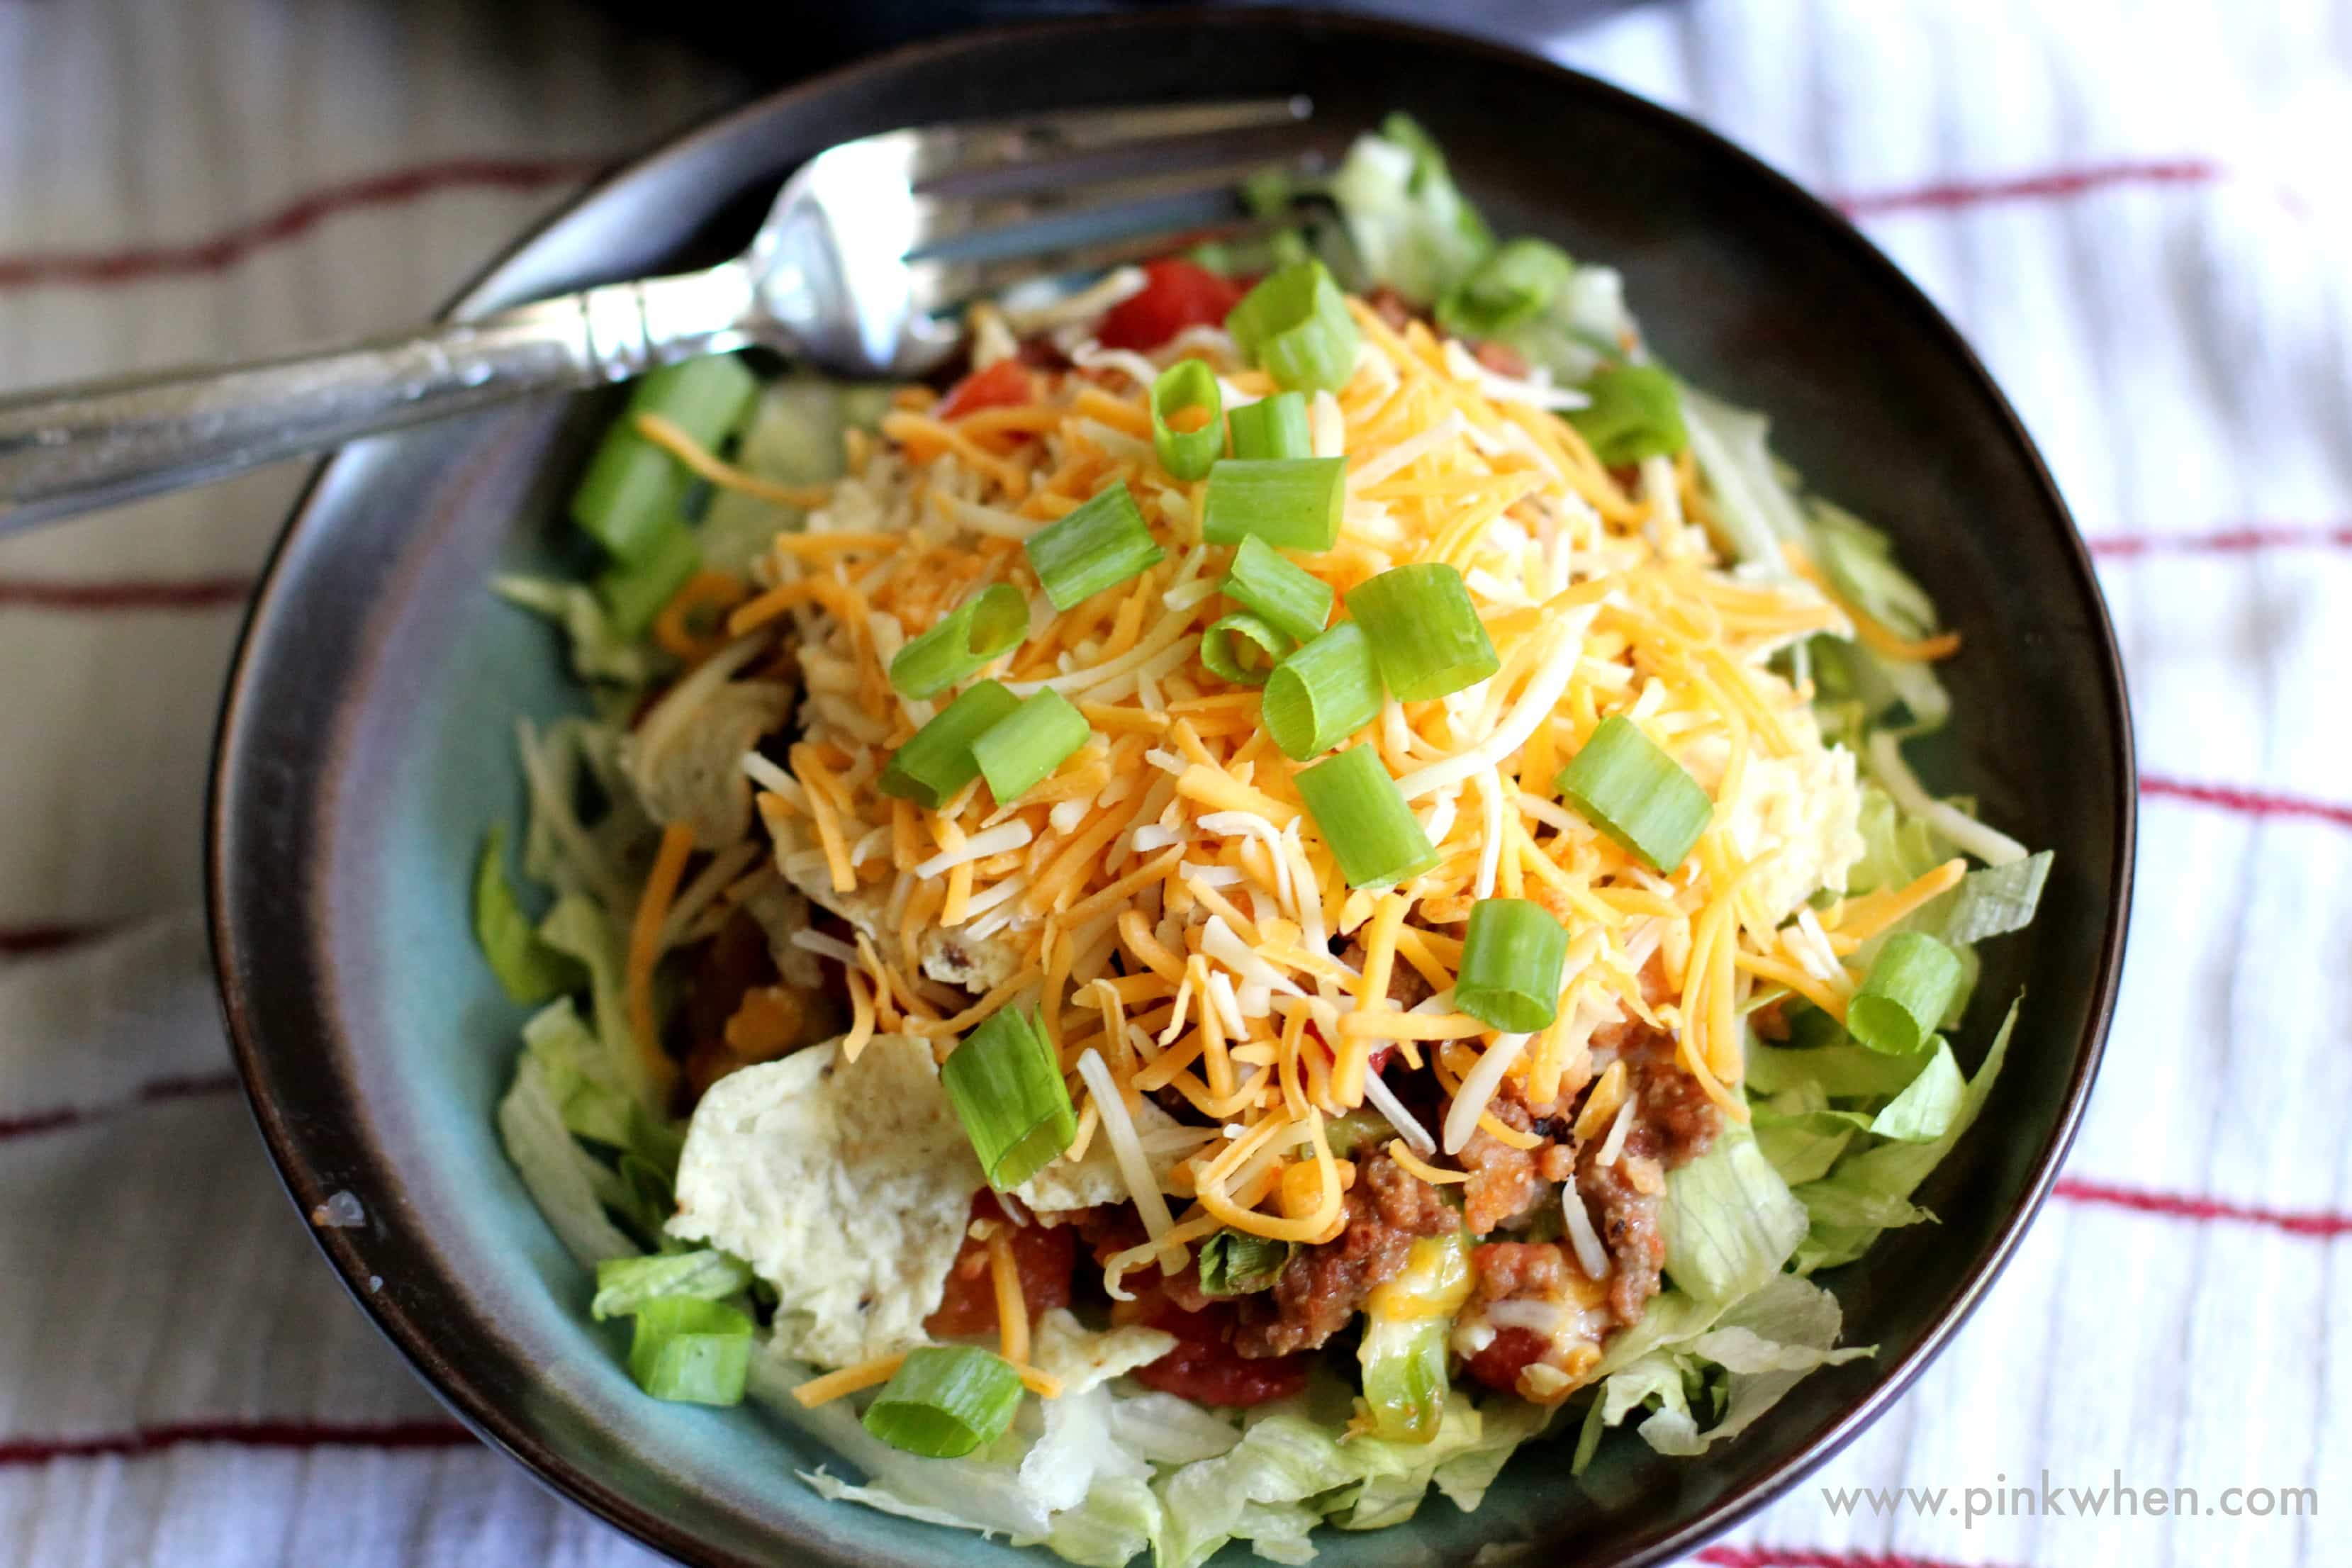 Skillet Beef and Bean Taco Casserole in a bowl.